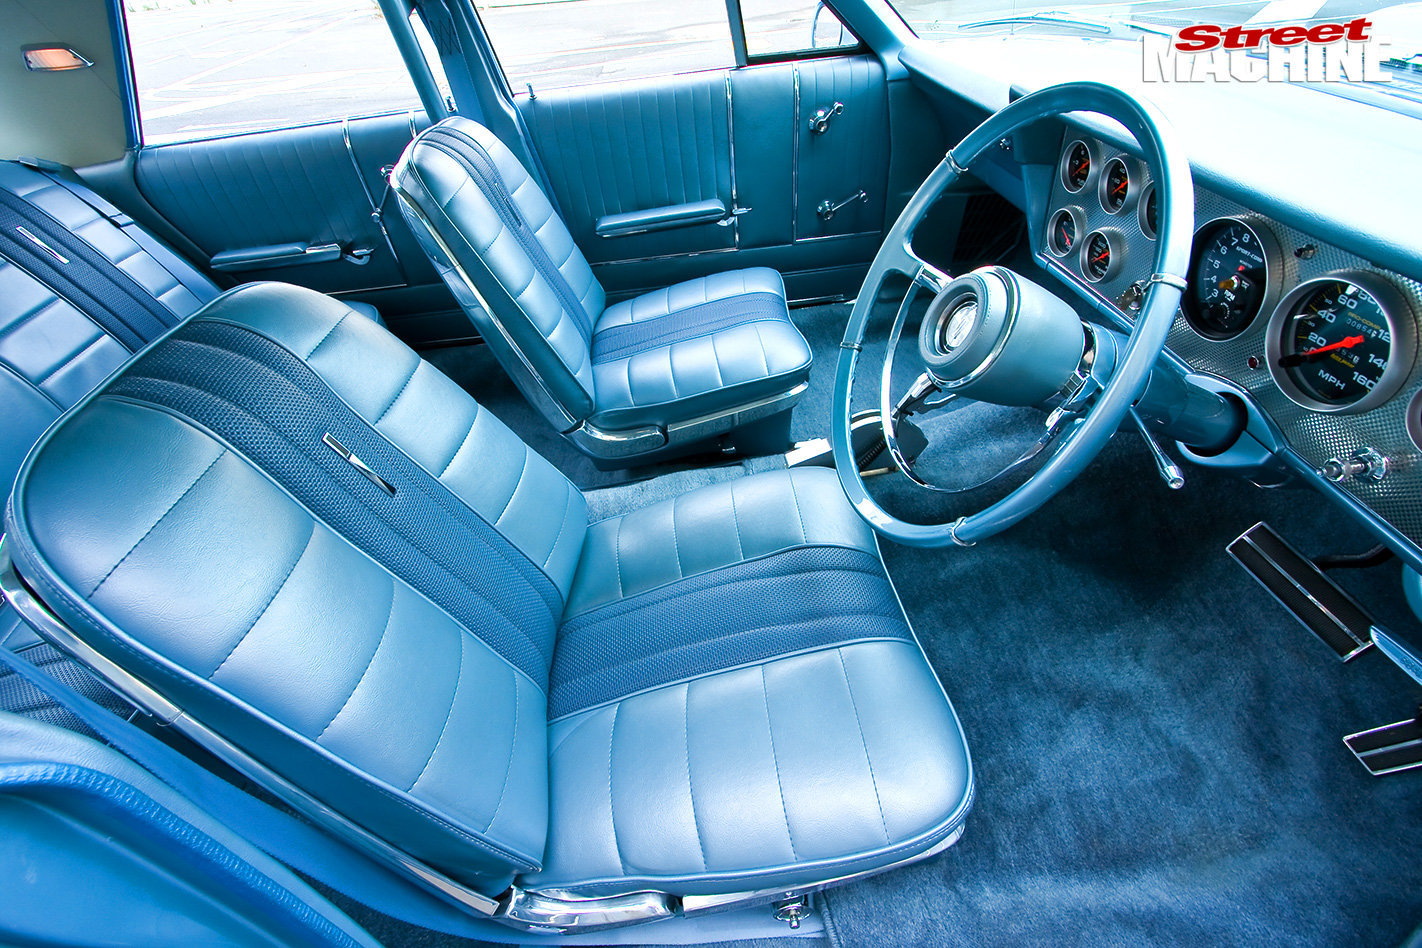 Ford -galaxie -interior